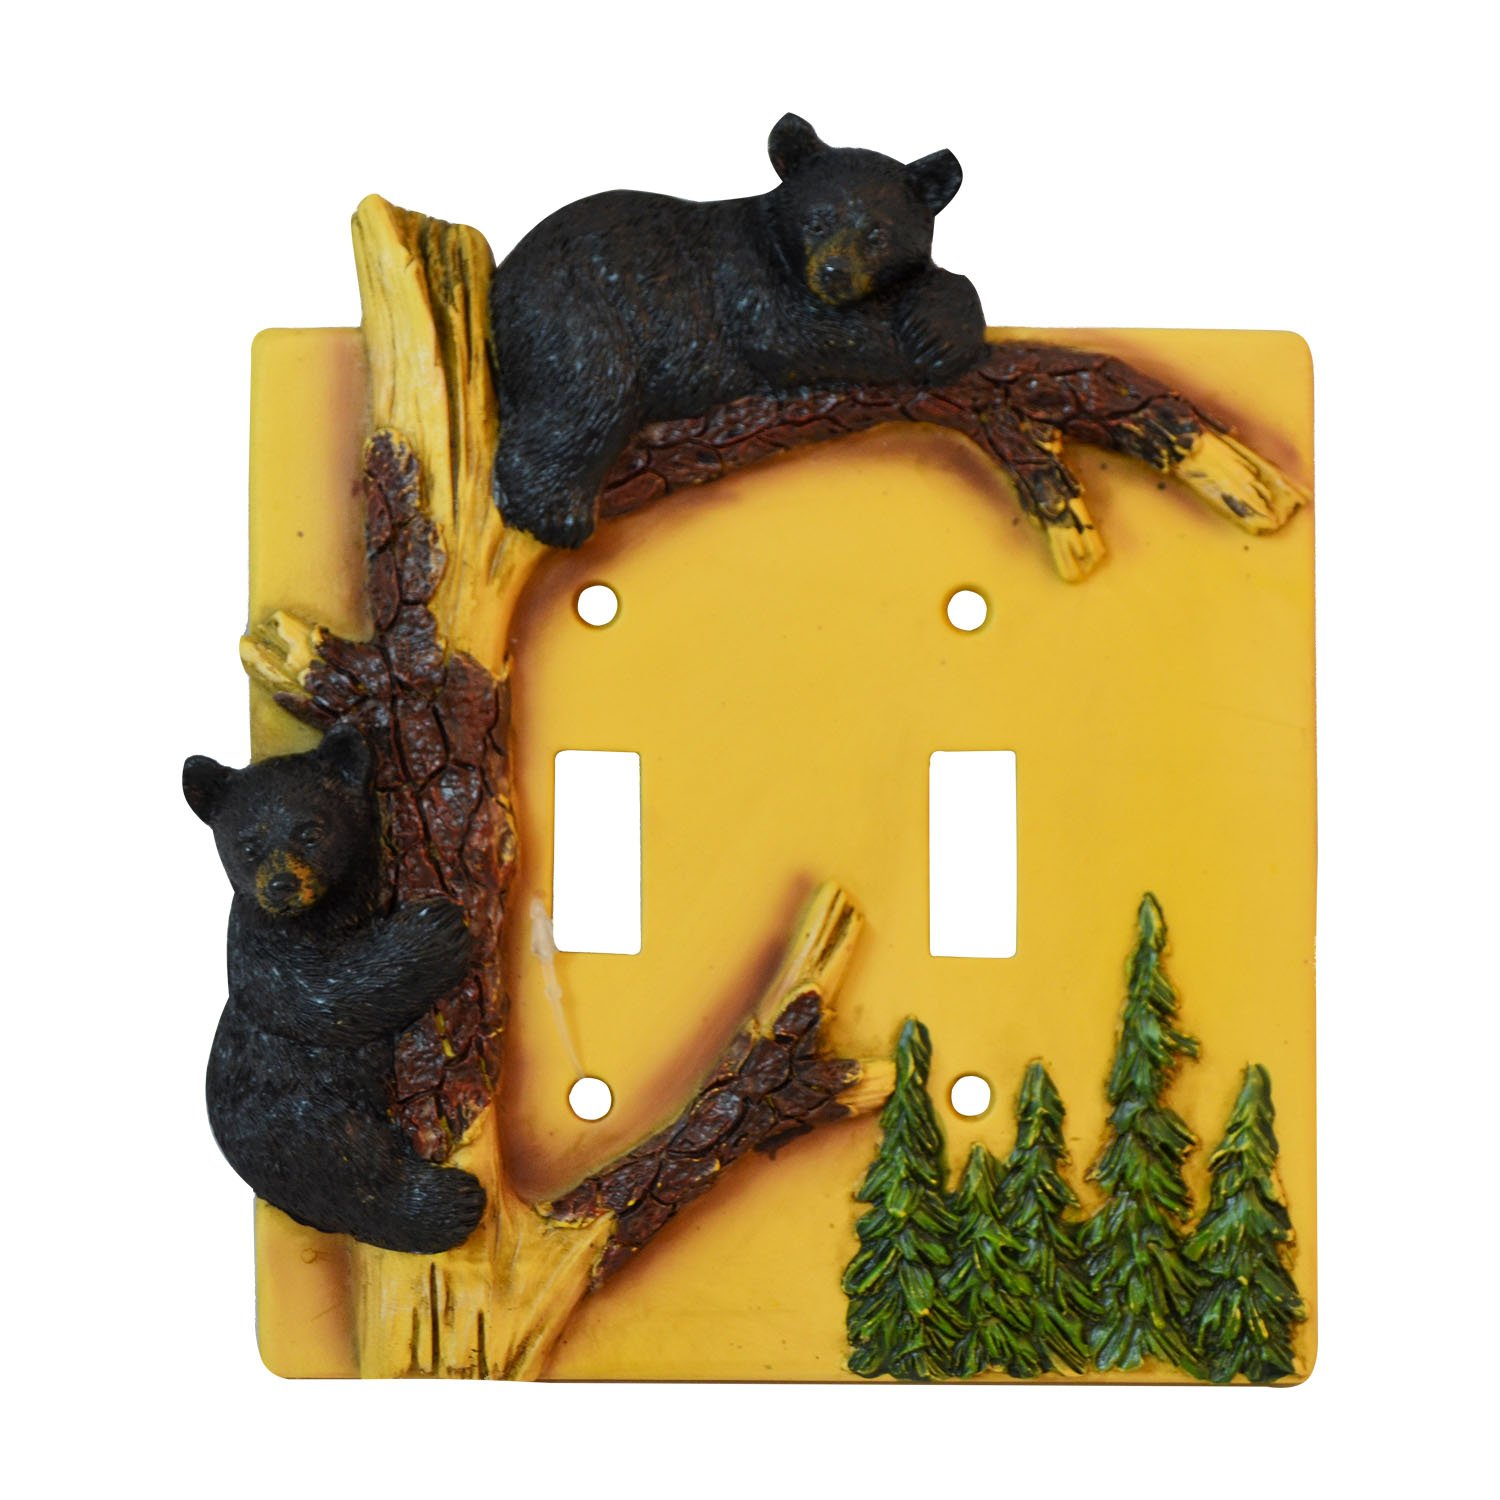 Black Bear Double Switch Cover Home Decor - Wildlife Bear Climbing Tree Rustic Hunting with Wall Mounting Screws Pine Ridge